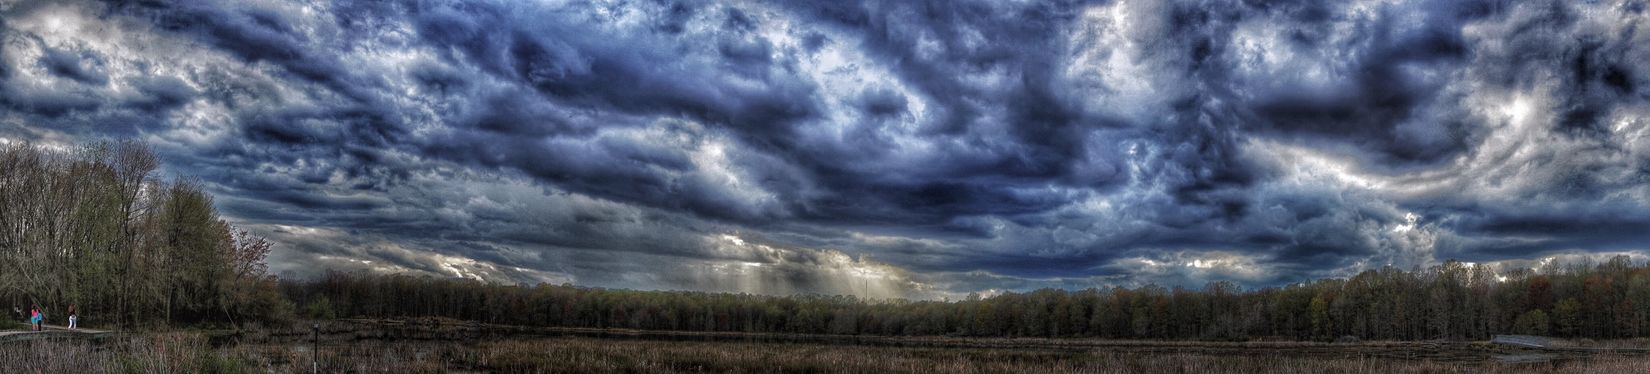 Pano: From sunny morning to stormy skies. Panorama Storm Clouds Water Reflections EyeEm Nature Lover Sony A6000 Enjoying Life